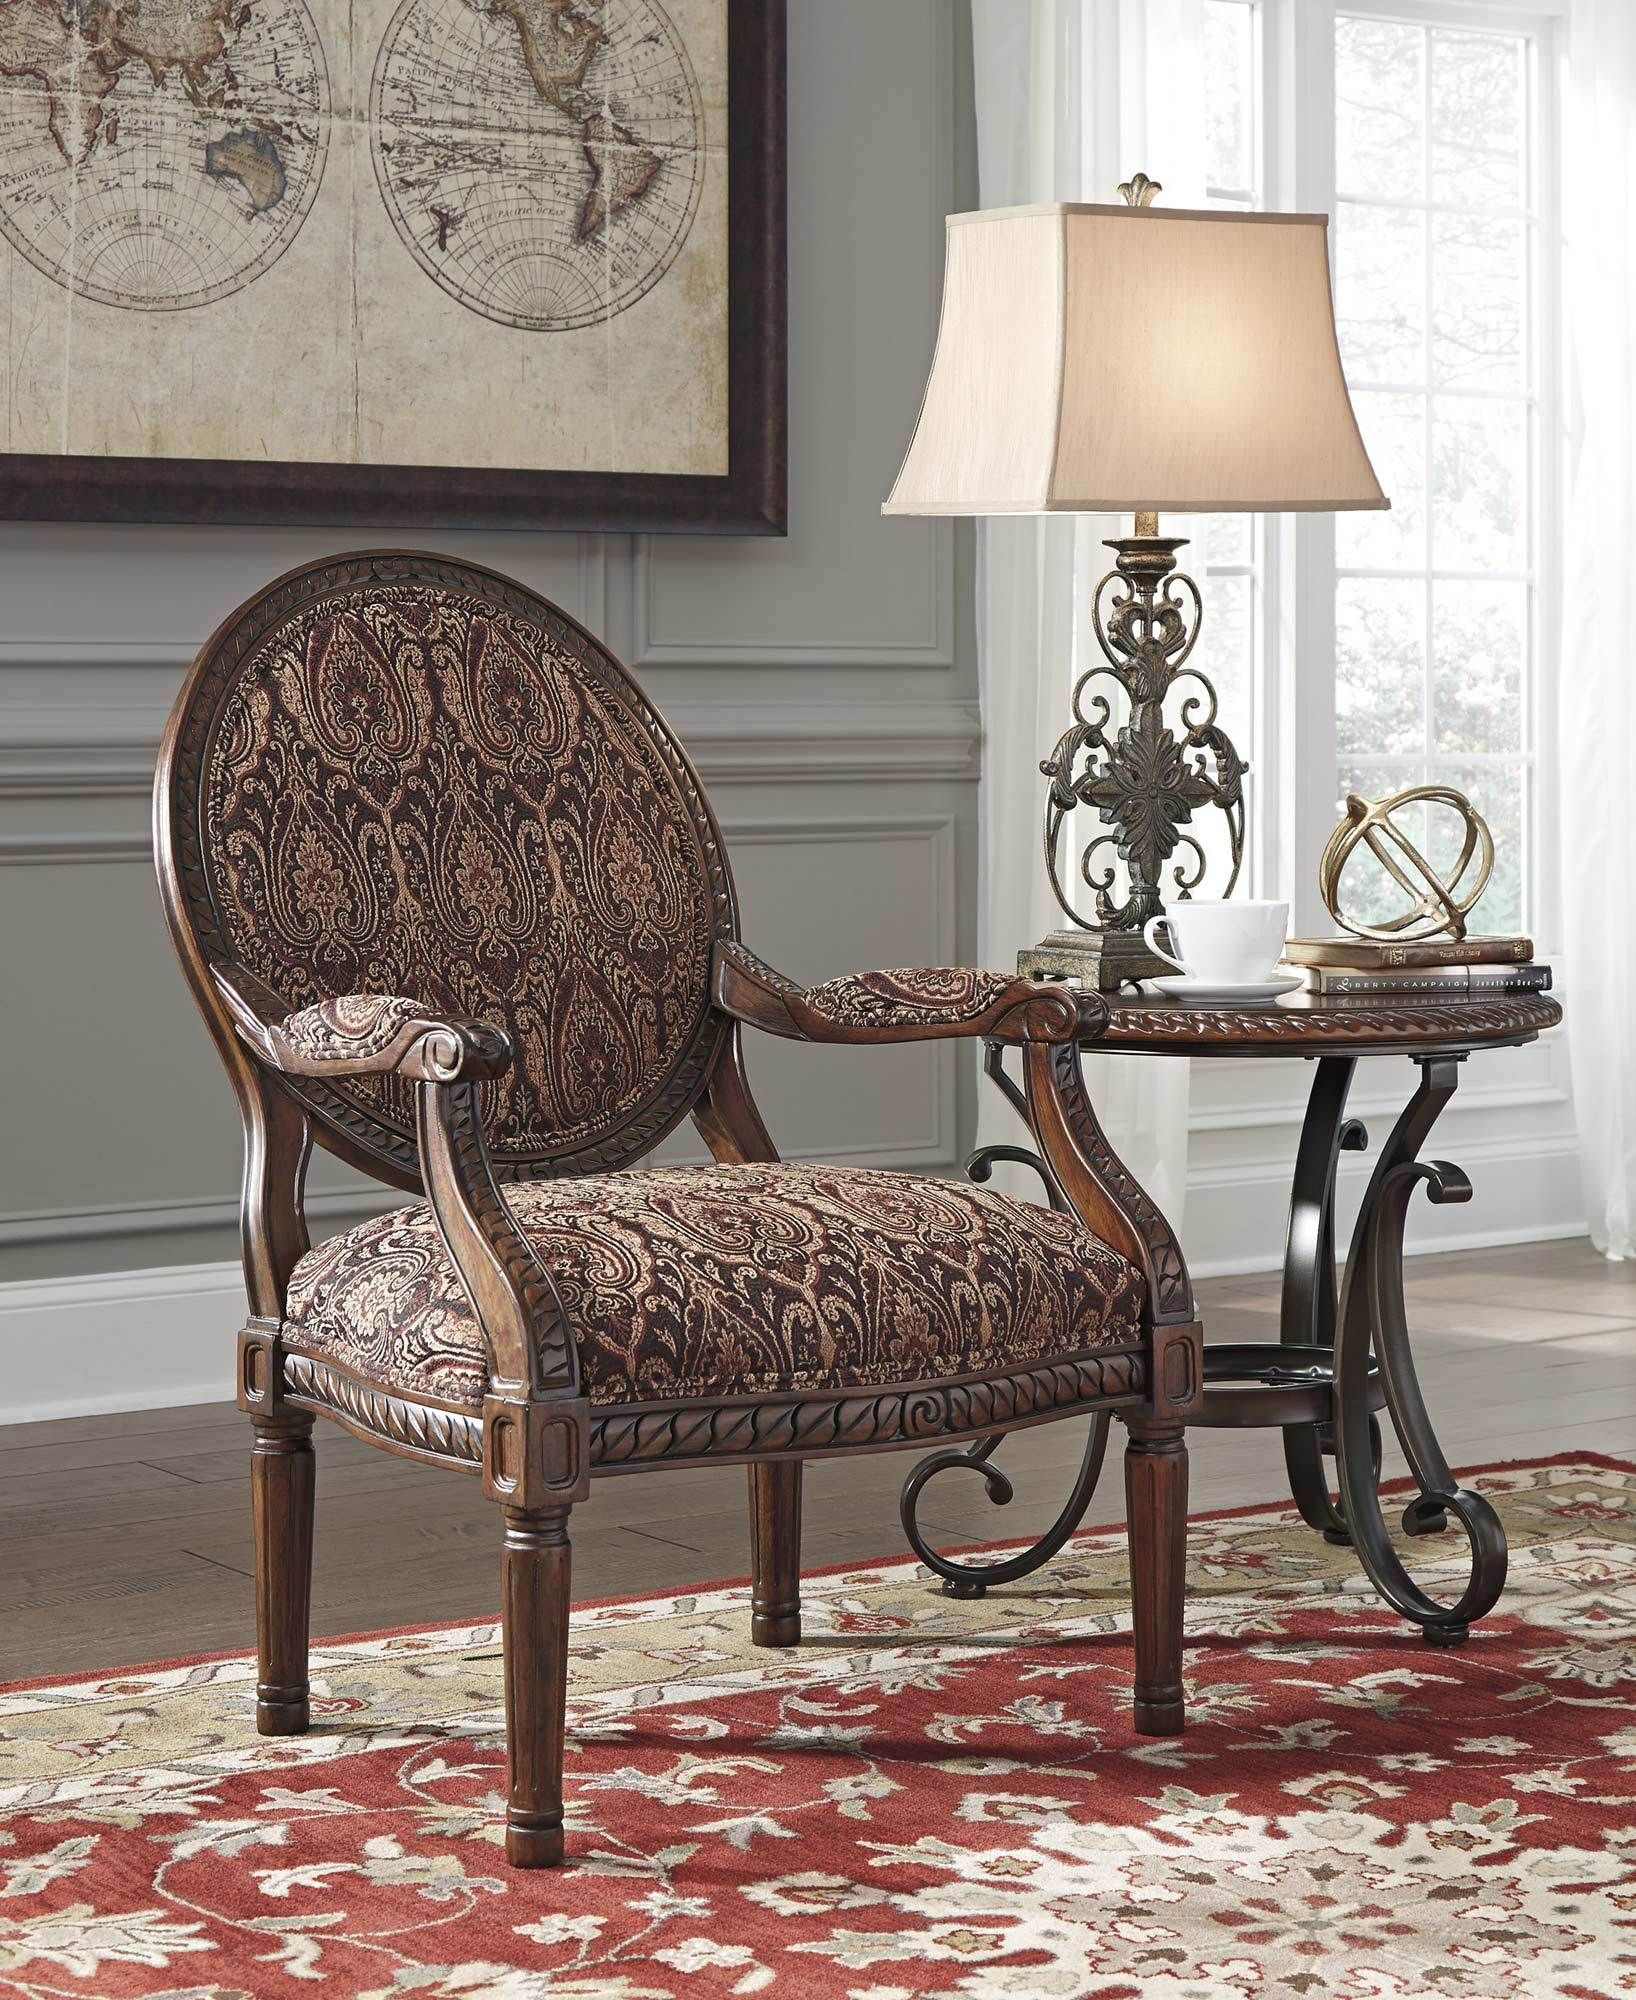 Vanceton Accent Chair in Brown   Ashley   Home Gallery Stores. Vanceton Accent Chair in Brown   Ashley   Home Gallery Stores